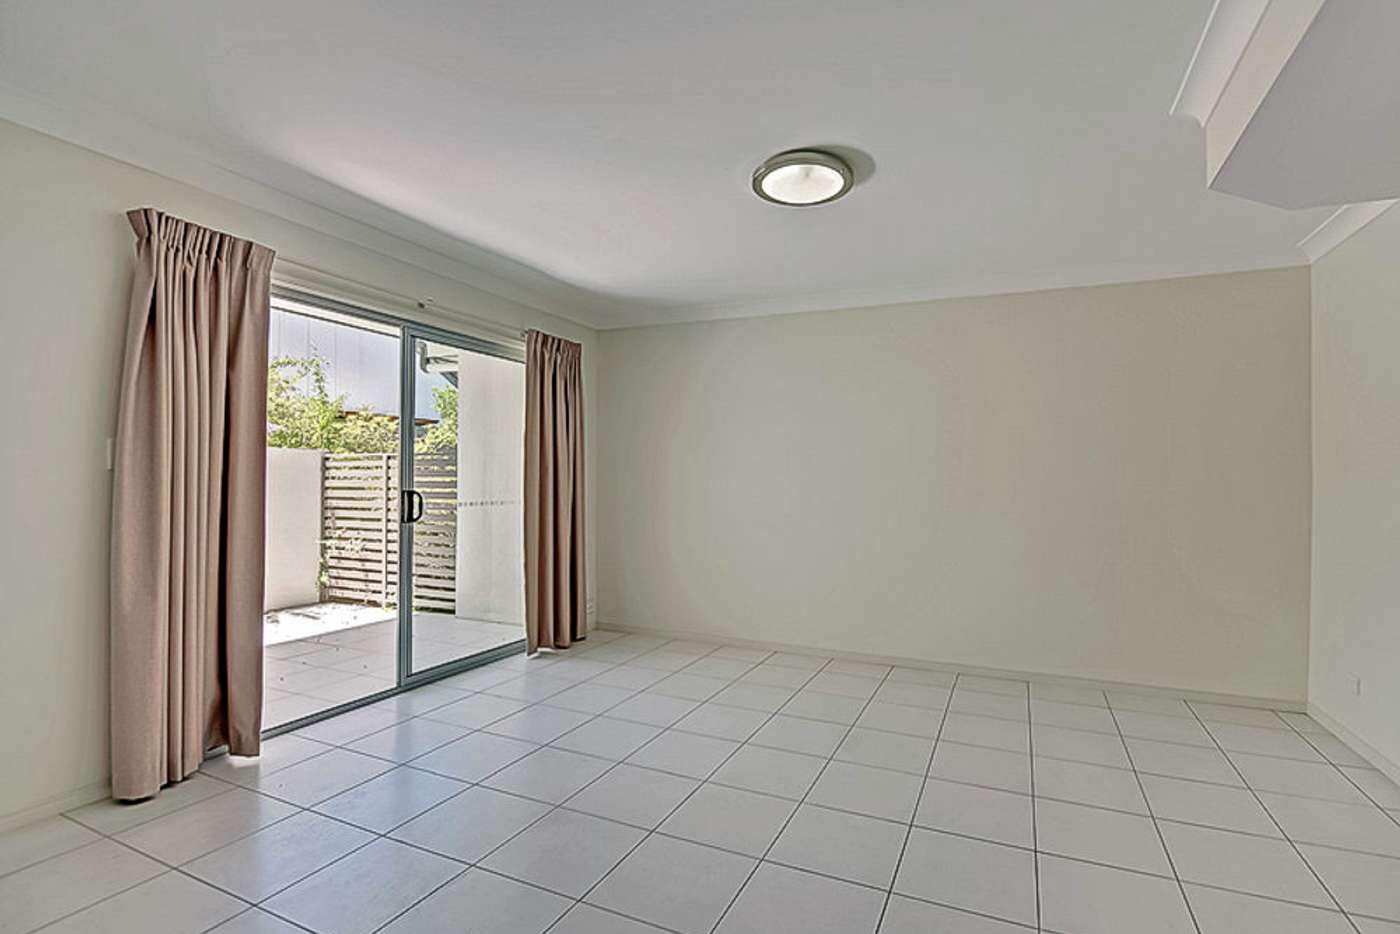 Sixth view of Homely unit listing, 3/69 Denman Street, Greenslopes QLD 4120